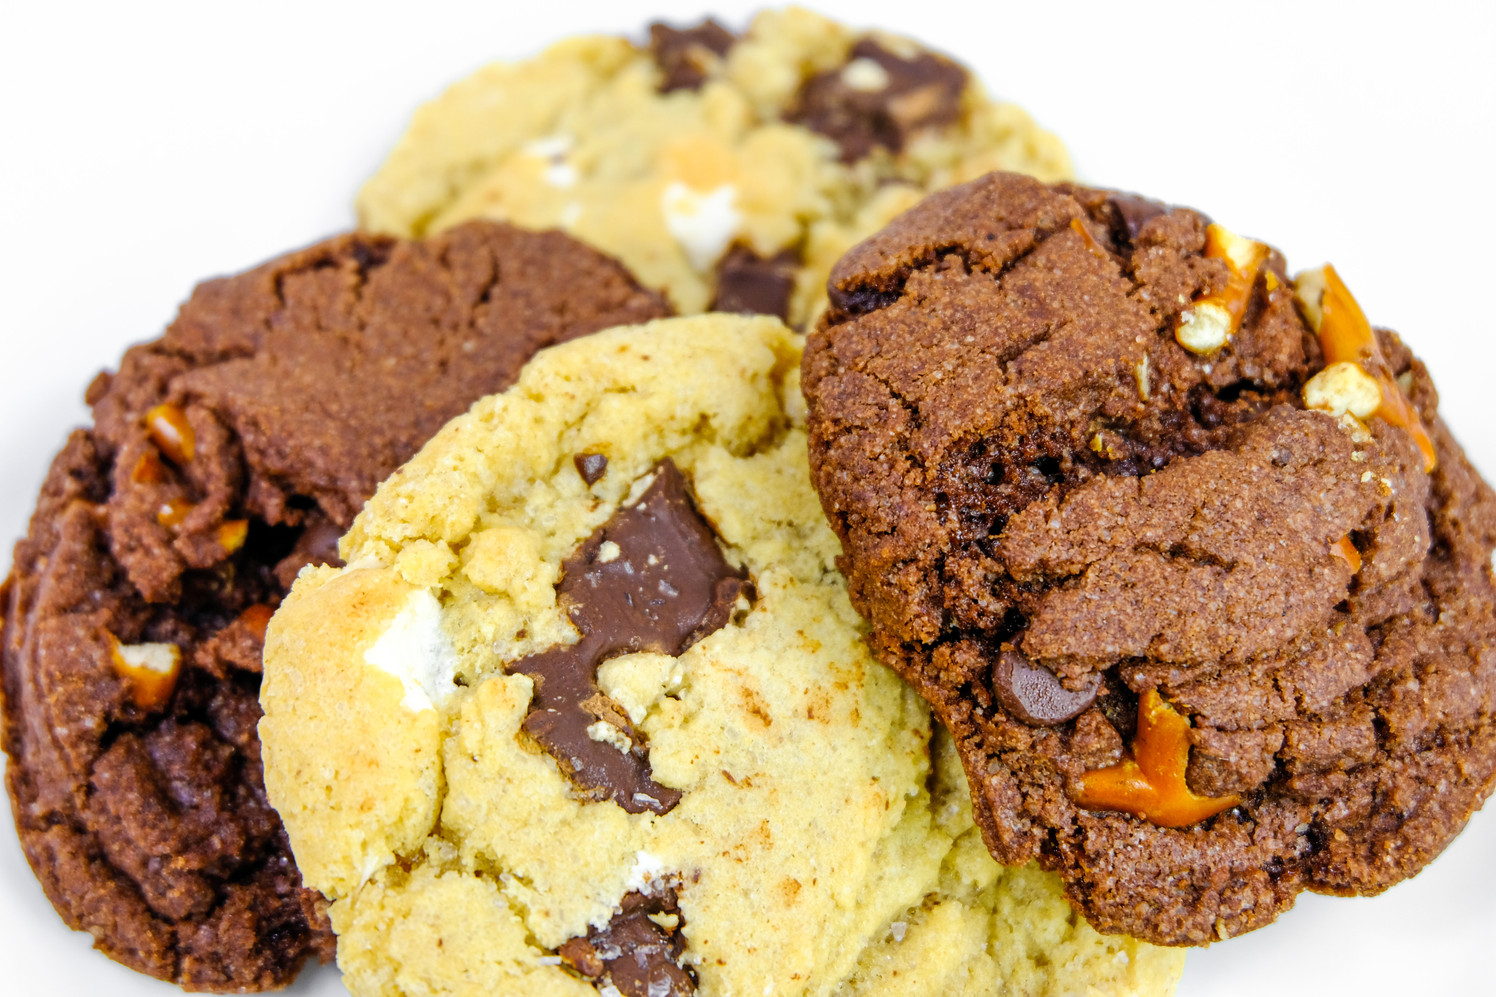 Chocolate Chunk and Double Chocolate Salted Pretzel Cookies